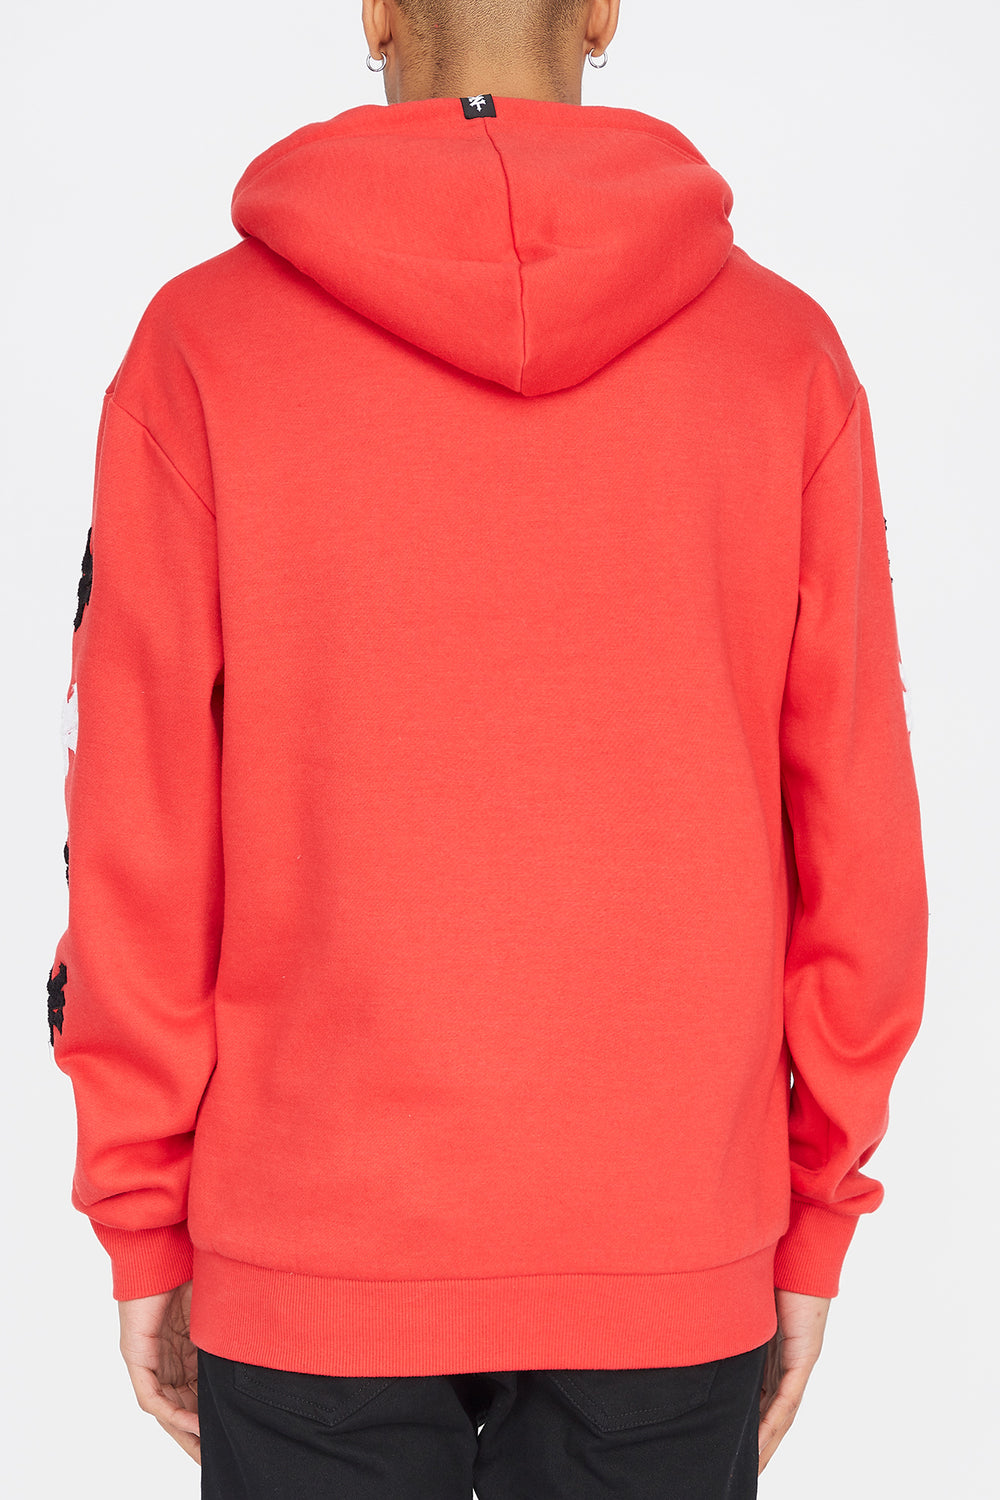 Zoo York Mens Chenille Logos Hoodie Red